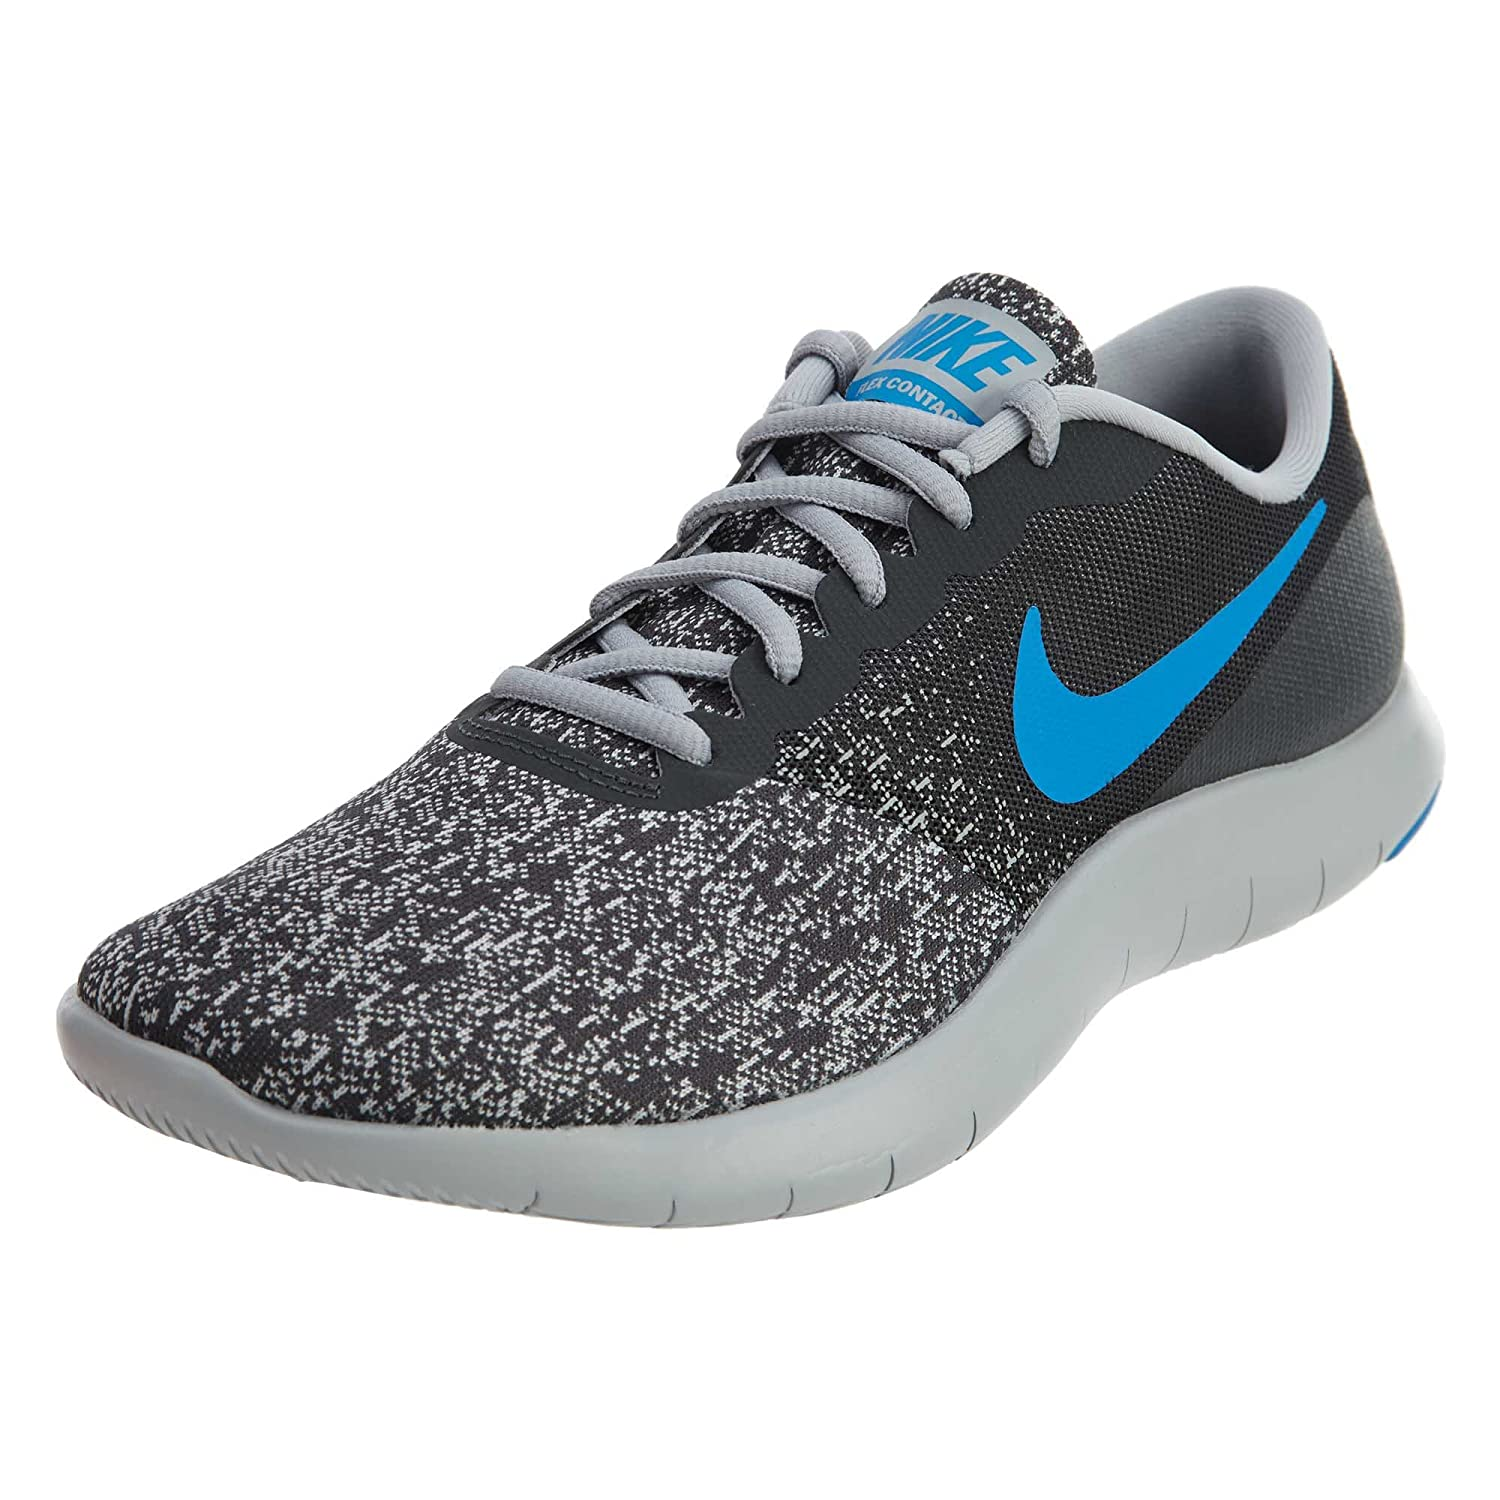 NIKE Men's Flex Contact Running Shoe B0763RNFMC 10 D(M) US|Anthracite/Photo Blue-wolf Grey